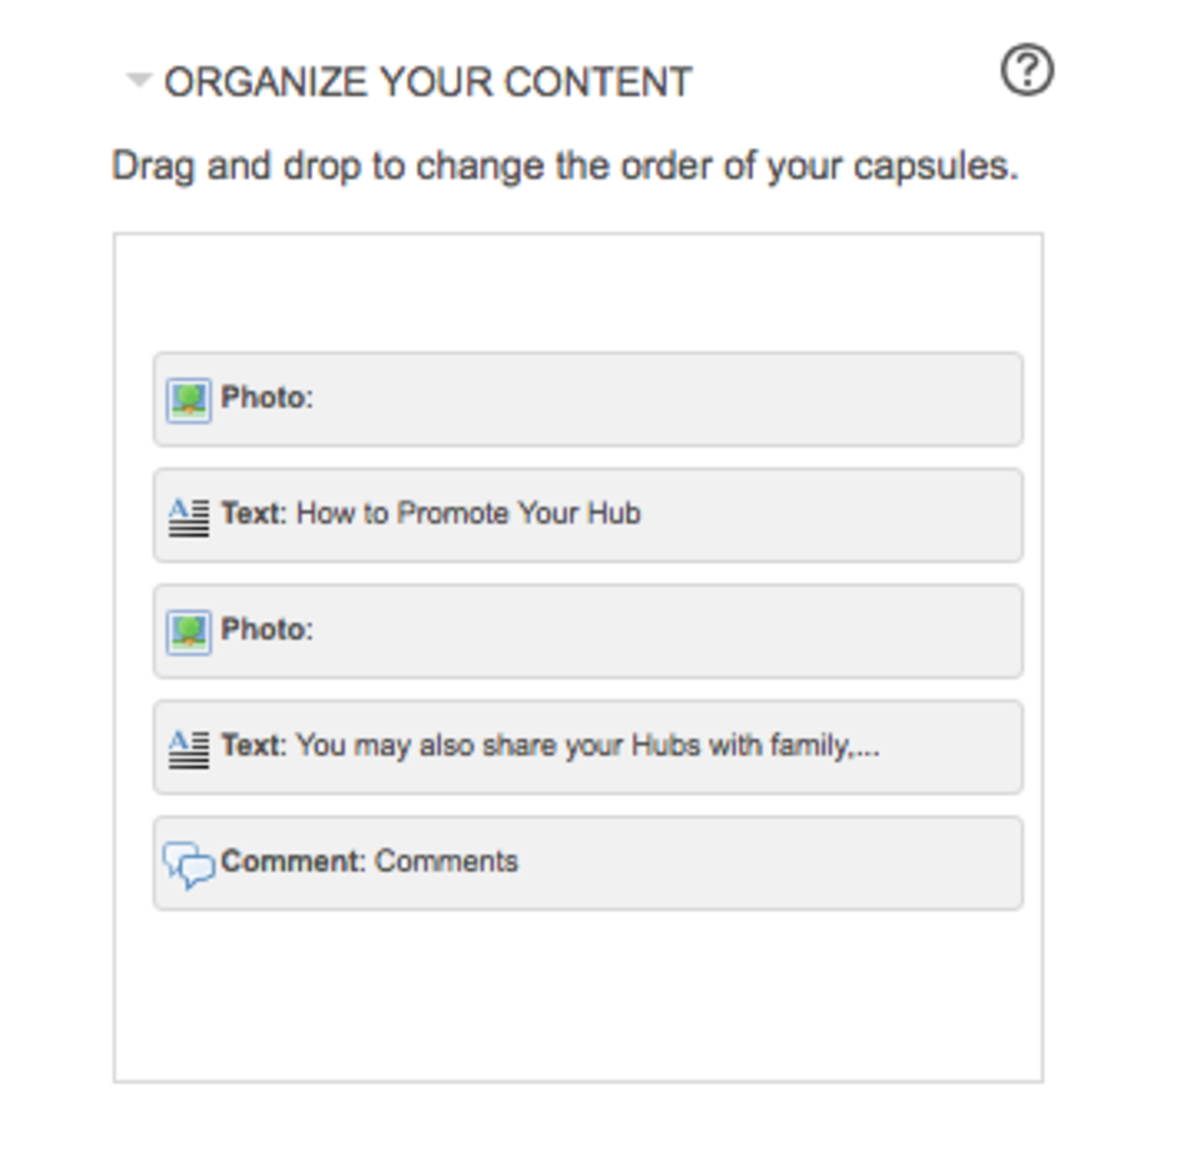 Drag and drop these modules to reorganize your article.